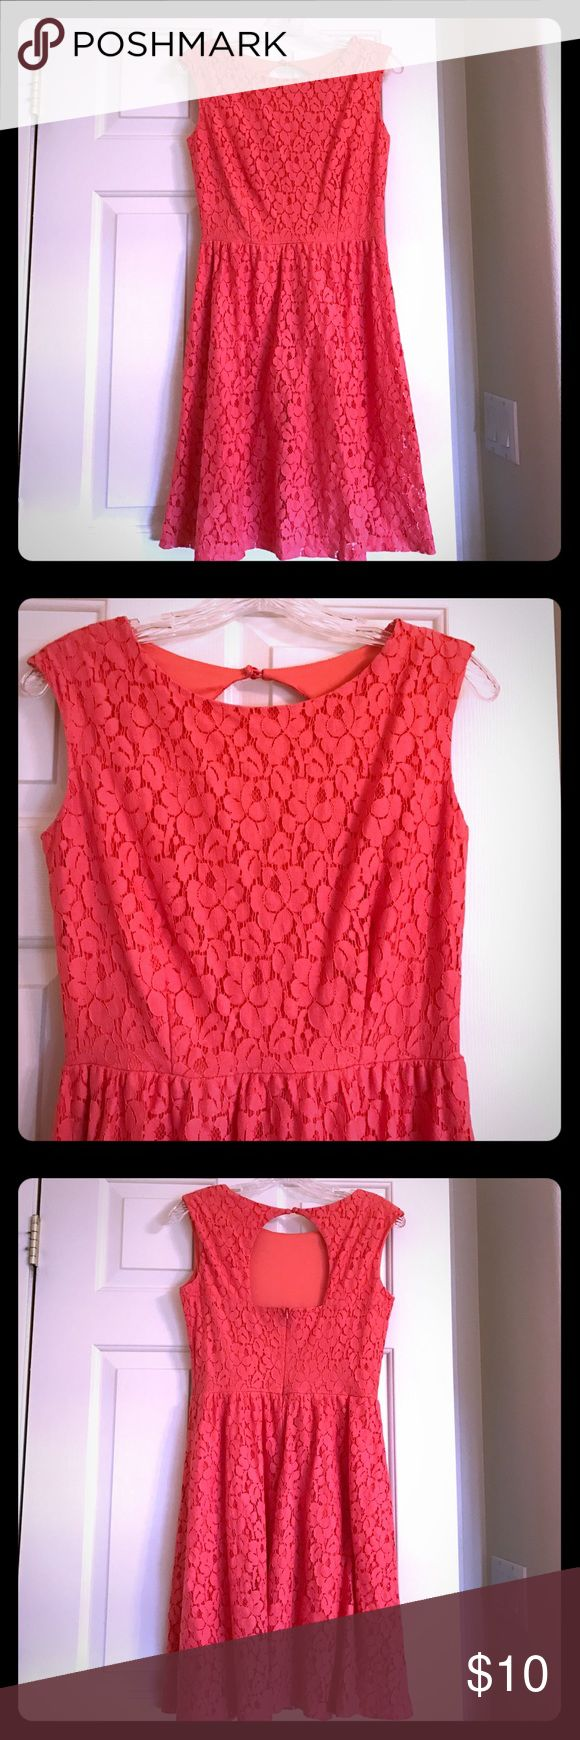 Peach Lace Dress Peach lace dress. Zips up the back. Worn a few times but still in good condition. Cut the tag off but pRetty sure it's a size small. Great for spring!! Dresses Midi